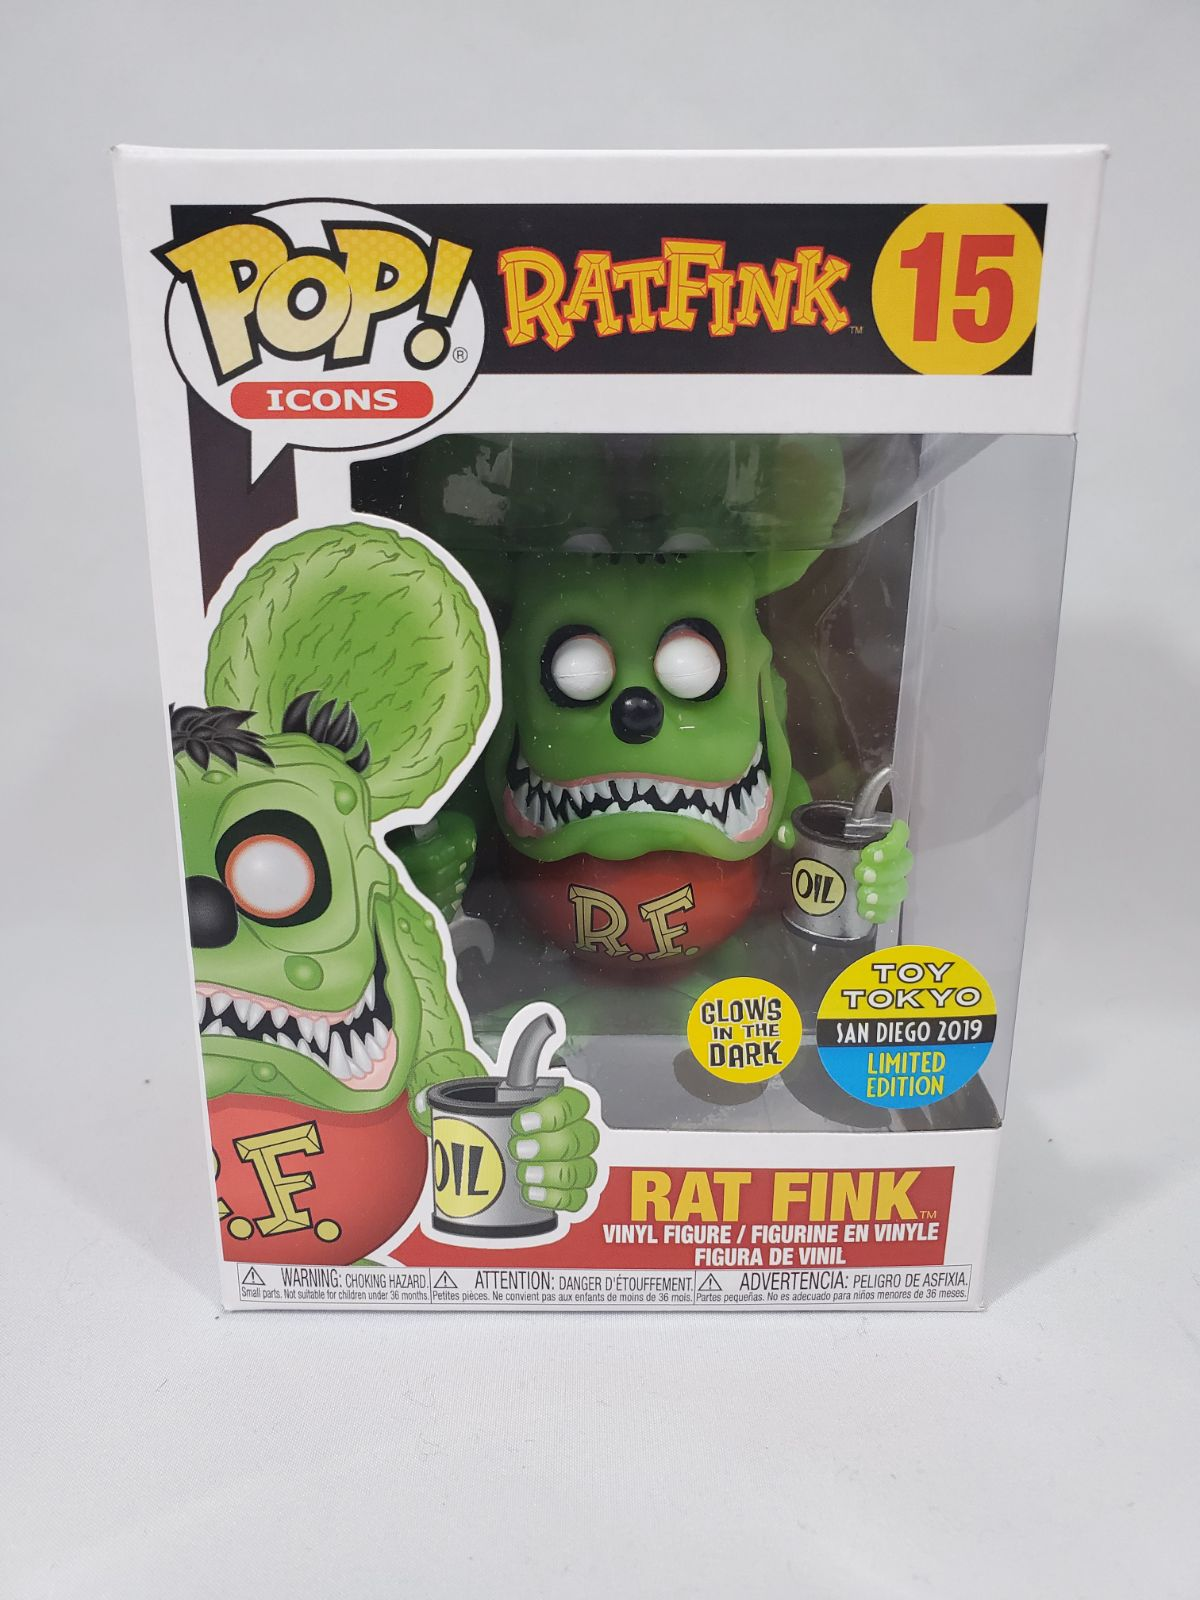 2019 SDCC Rat Fink GITD Funko Pop!